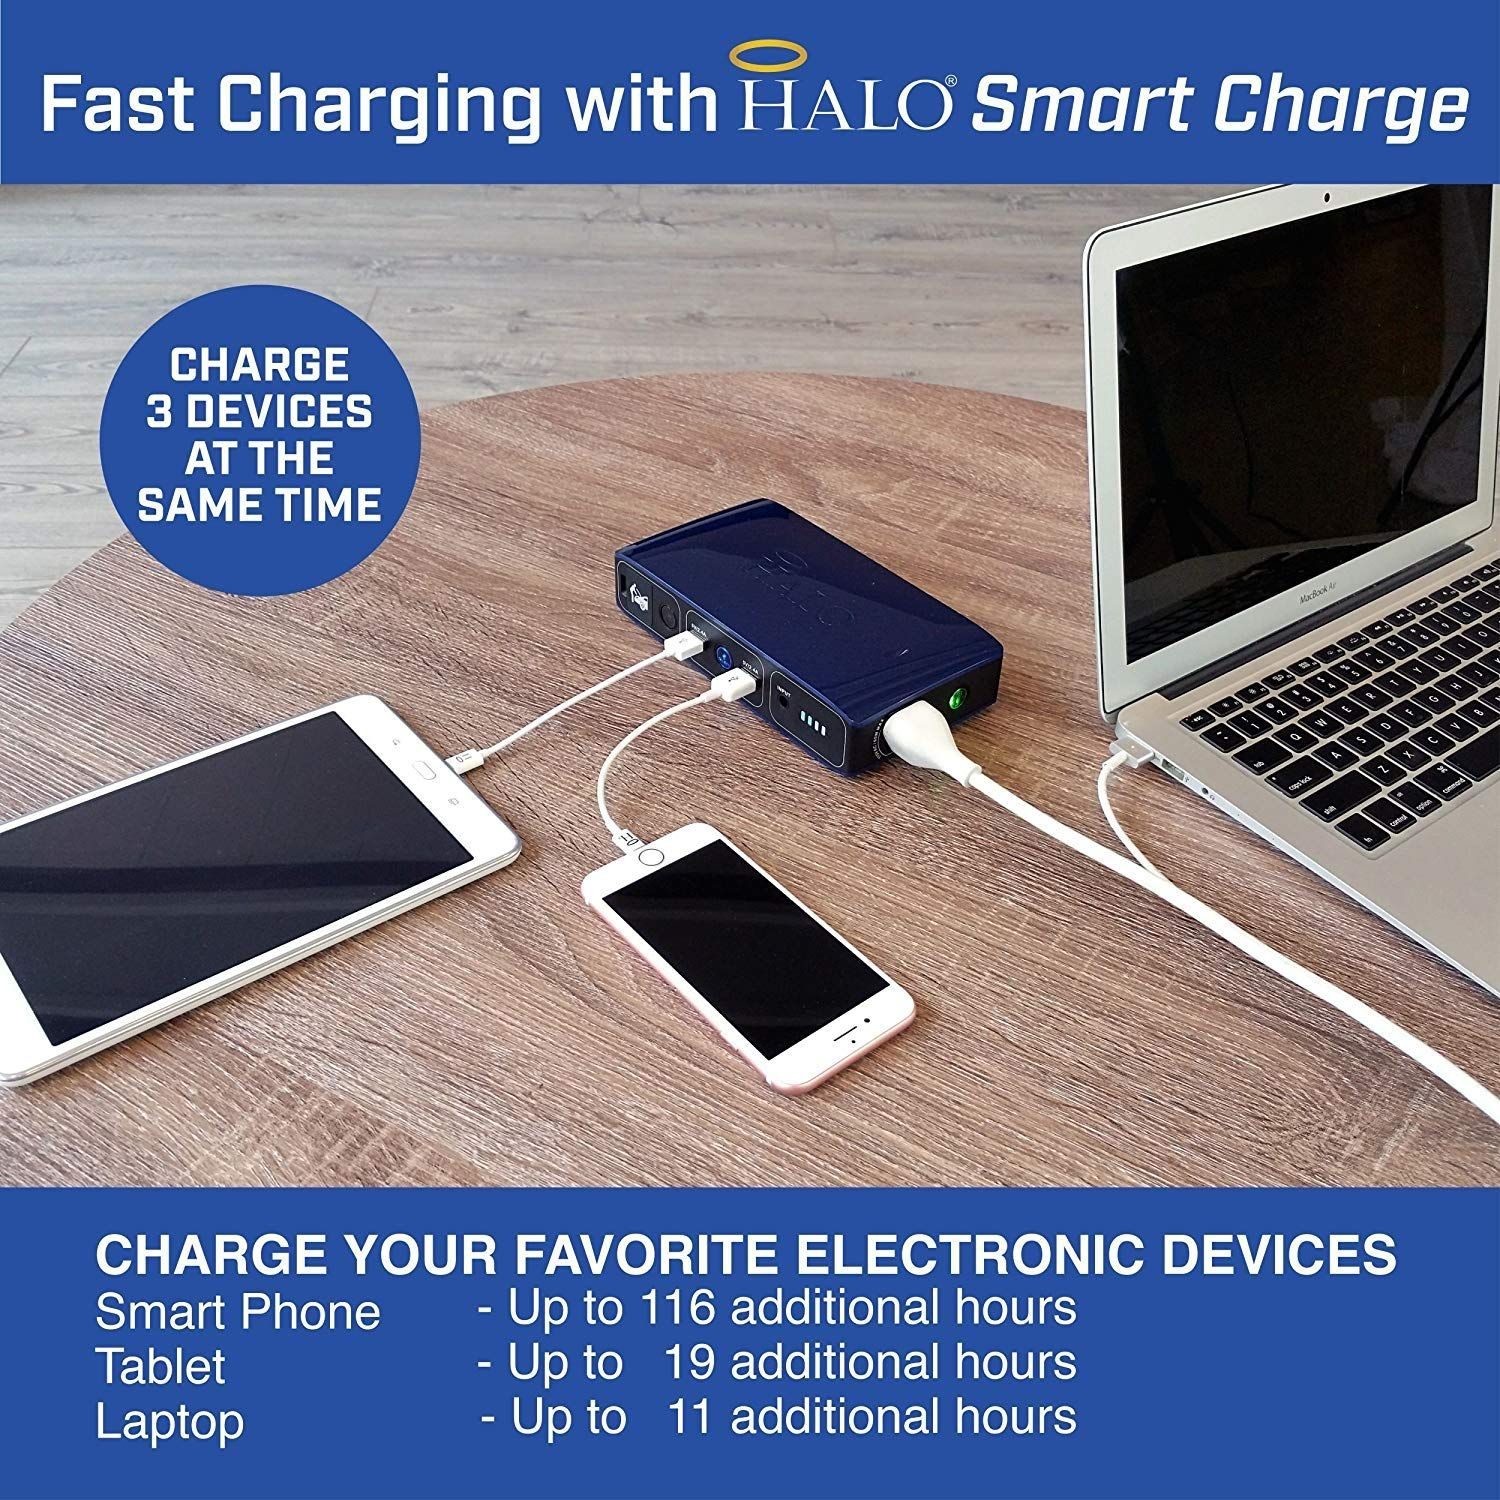 Universal Laptop, Tablet and Phone Charger. And also car